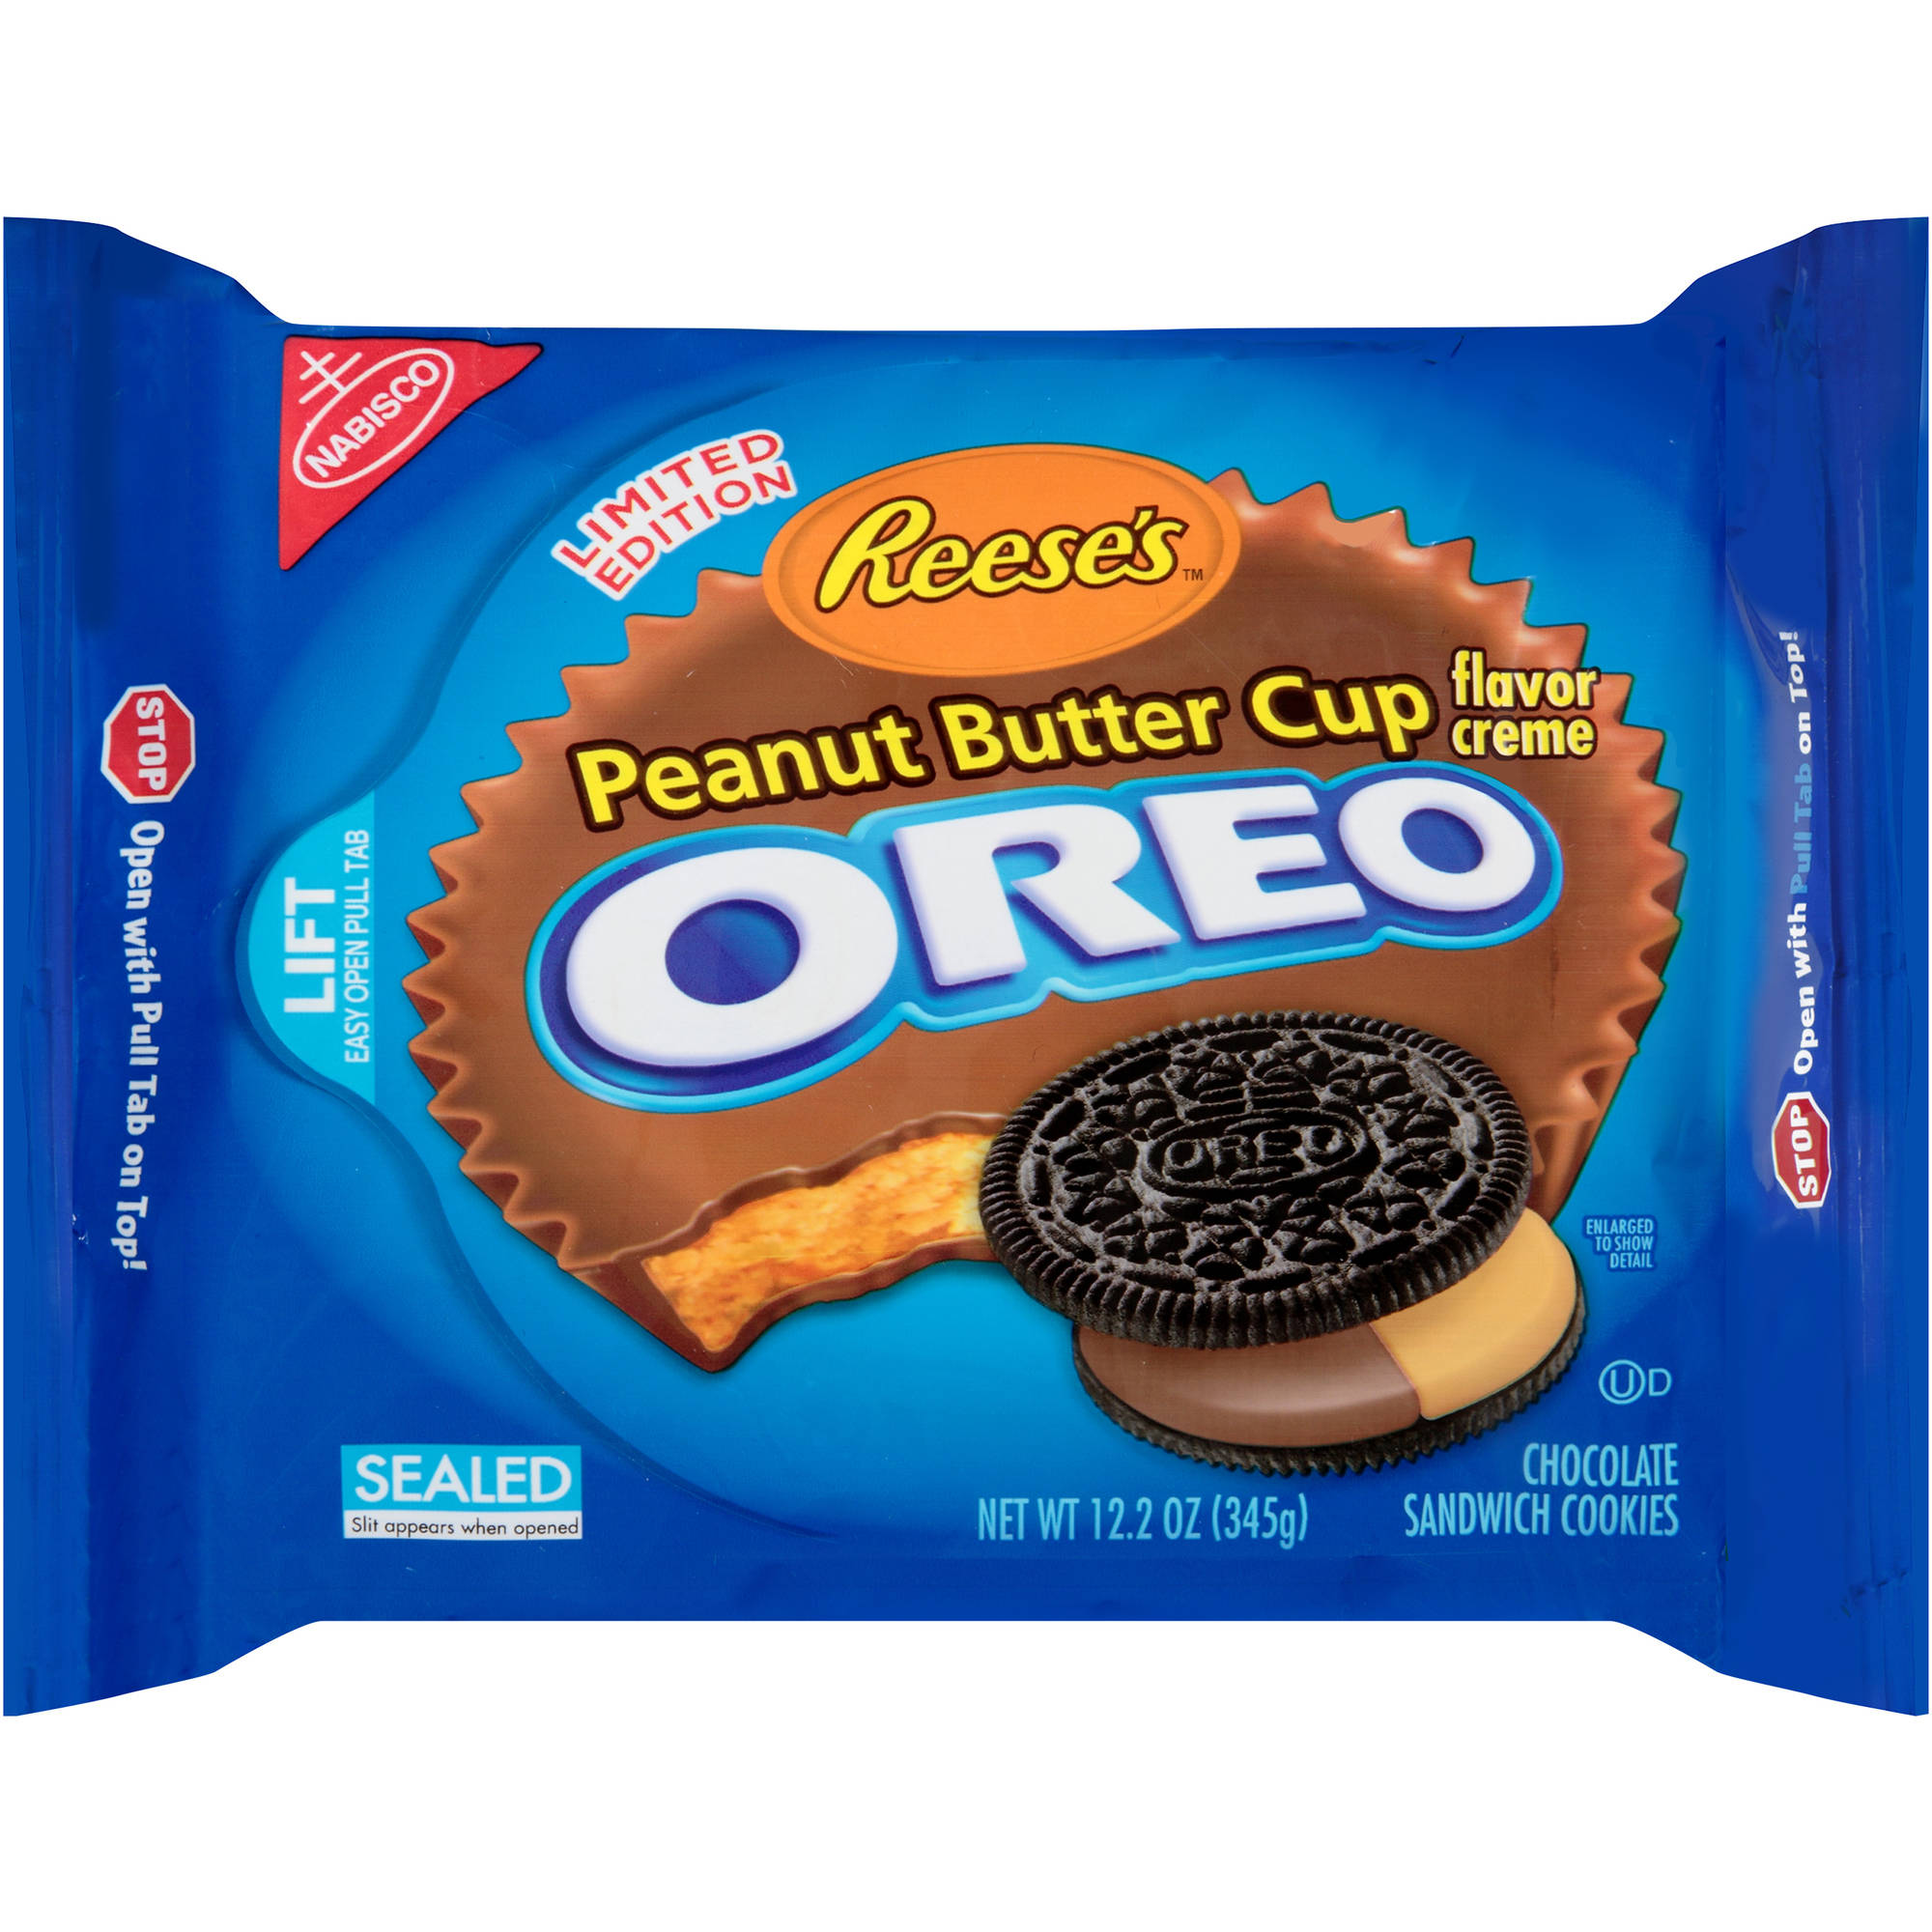 Nabisco Reese's Peanut Butter Cup Creme Oreo Chocolate Sandwich Cookies, 12.2 oz